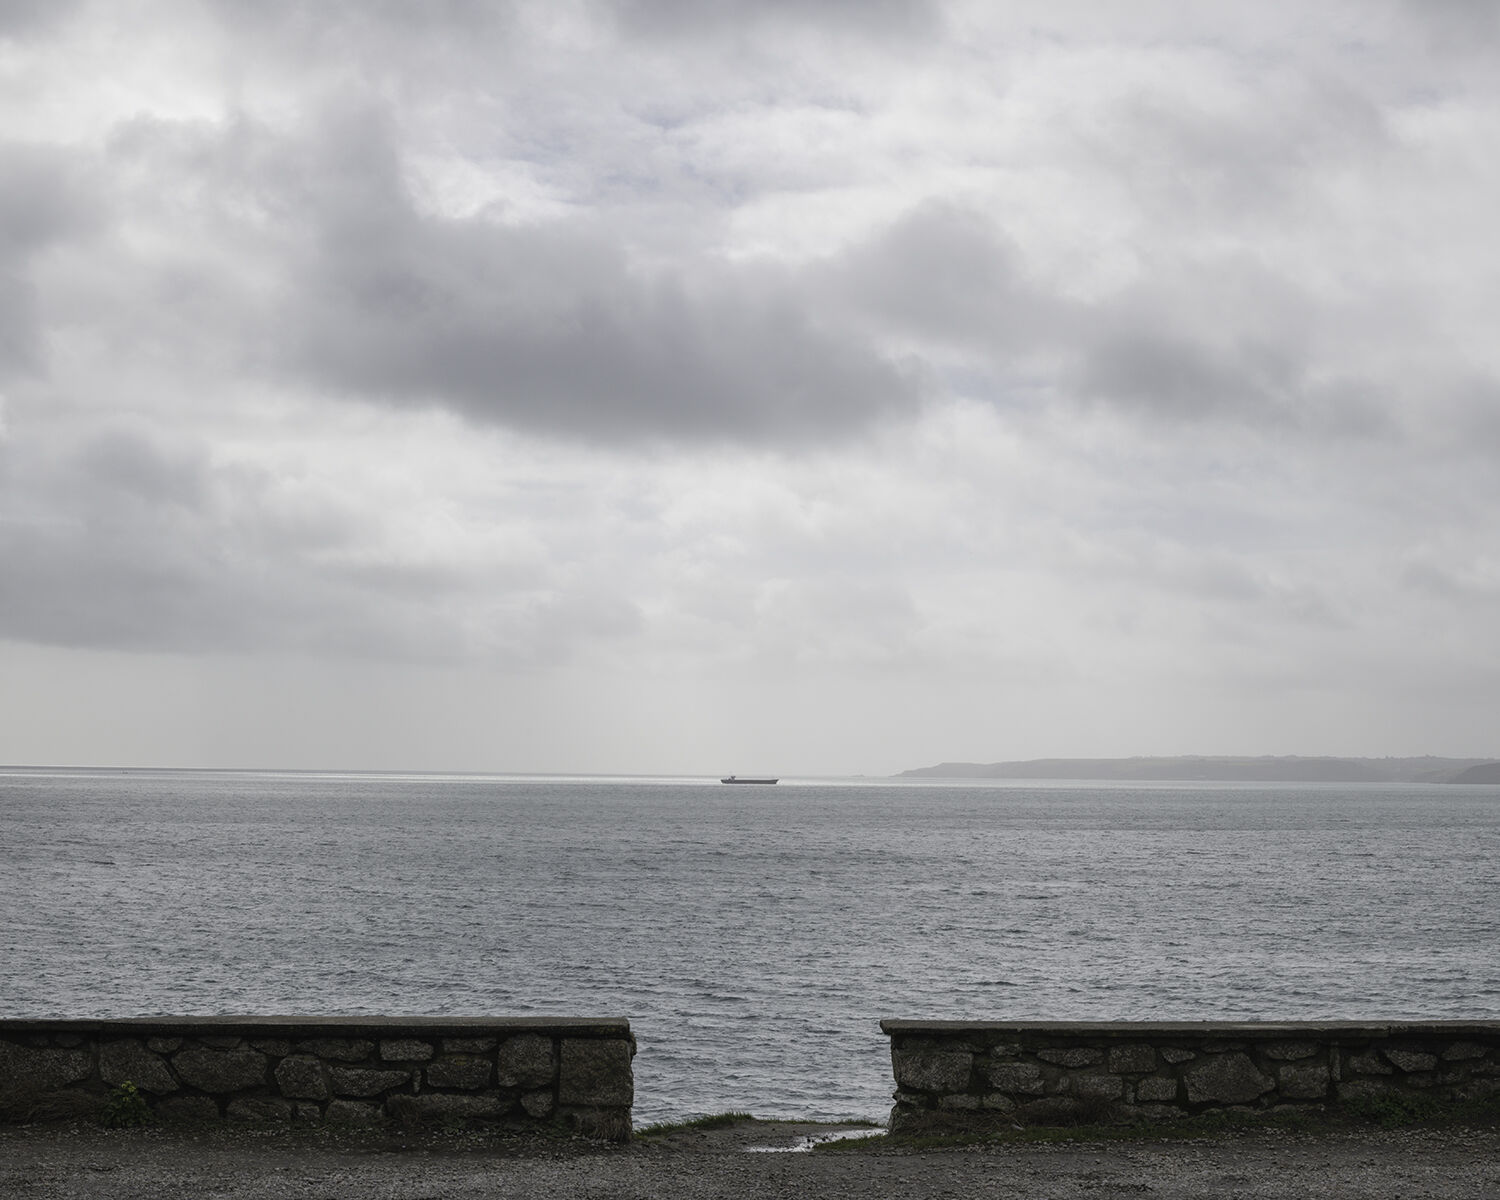 Pendennis Point, Falmouth, Cornwall (SW 82651 31566) looking S.